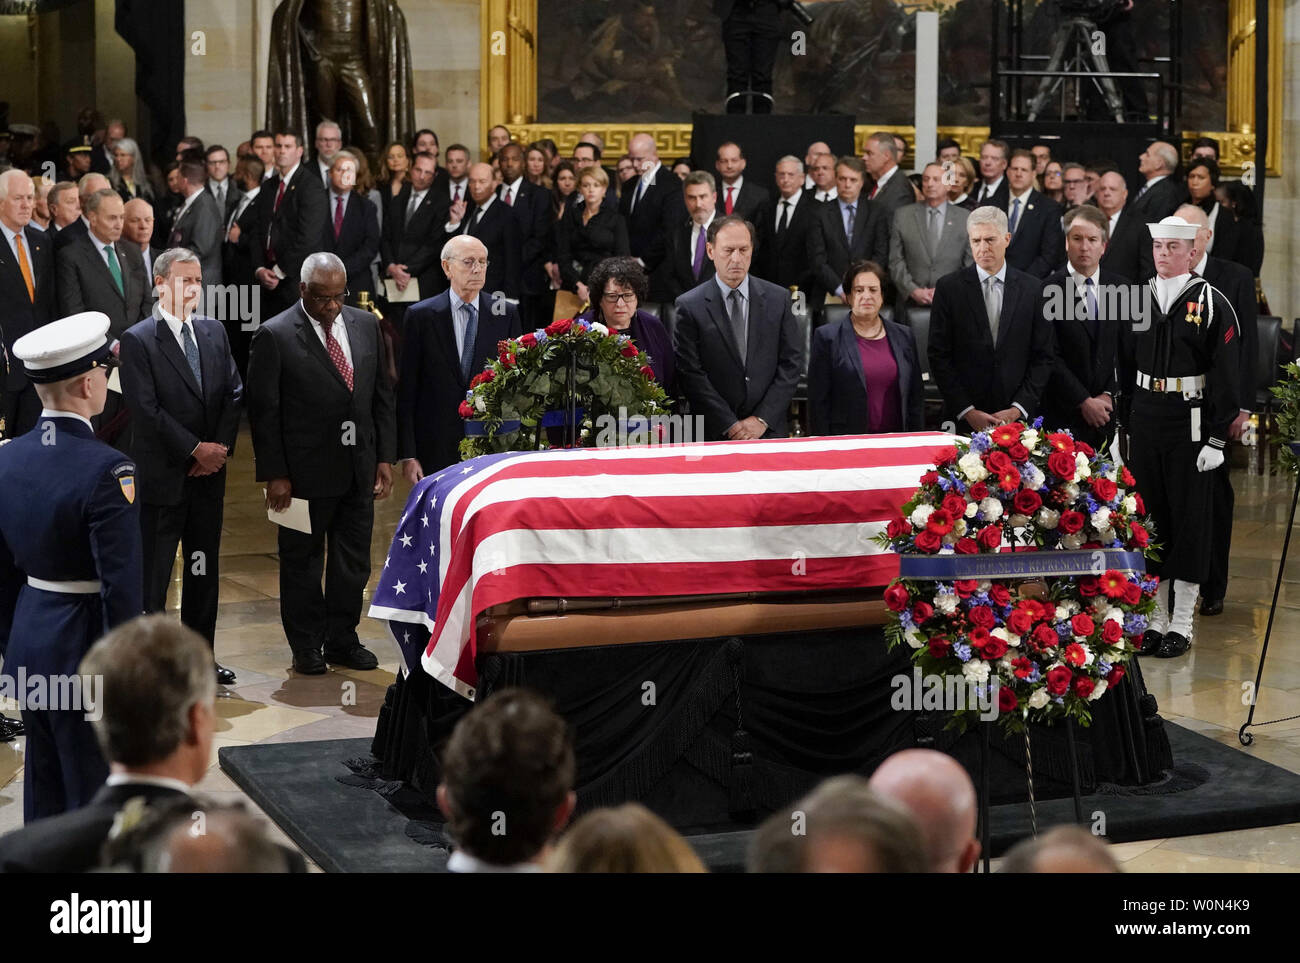 Members of the Supreme Court pause in front of the flag-draped casket of former President George H.W. Bush lying in state at the U.S. Capitol Rotunda in Washington, Monday, 3, 2018. From l-r., are Chief Justice John Roberts, Associate Justice Clarence Thomas, Associate Justice Stephen Breyer, Associate Justice Sonia Sotomayor, Associate Justice Samuel Alito, Associate Justice Elena Kagan, Associate Justice Neil Gorsuch, and Associate Justice Brett Kavanaugh. Photo by Pablo Martinez Monsivais/UPI - Stock Image